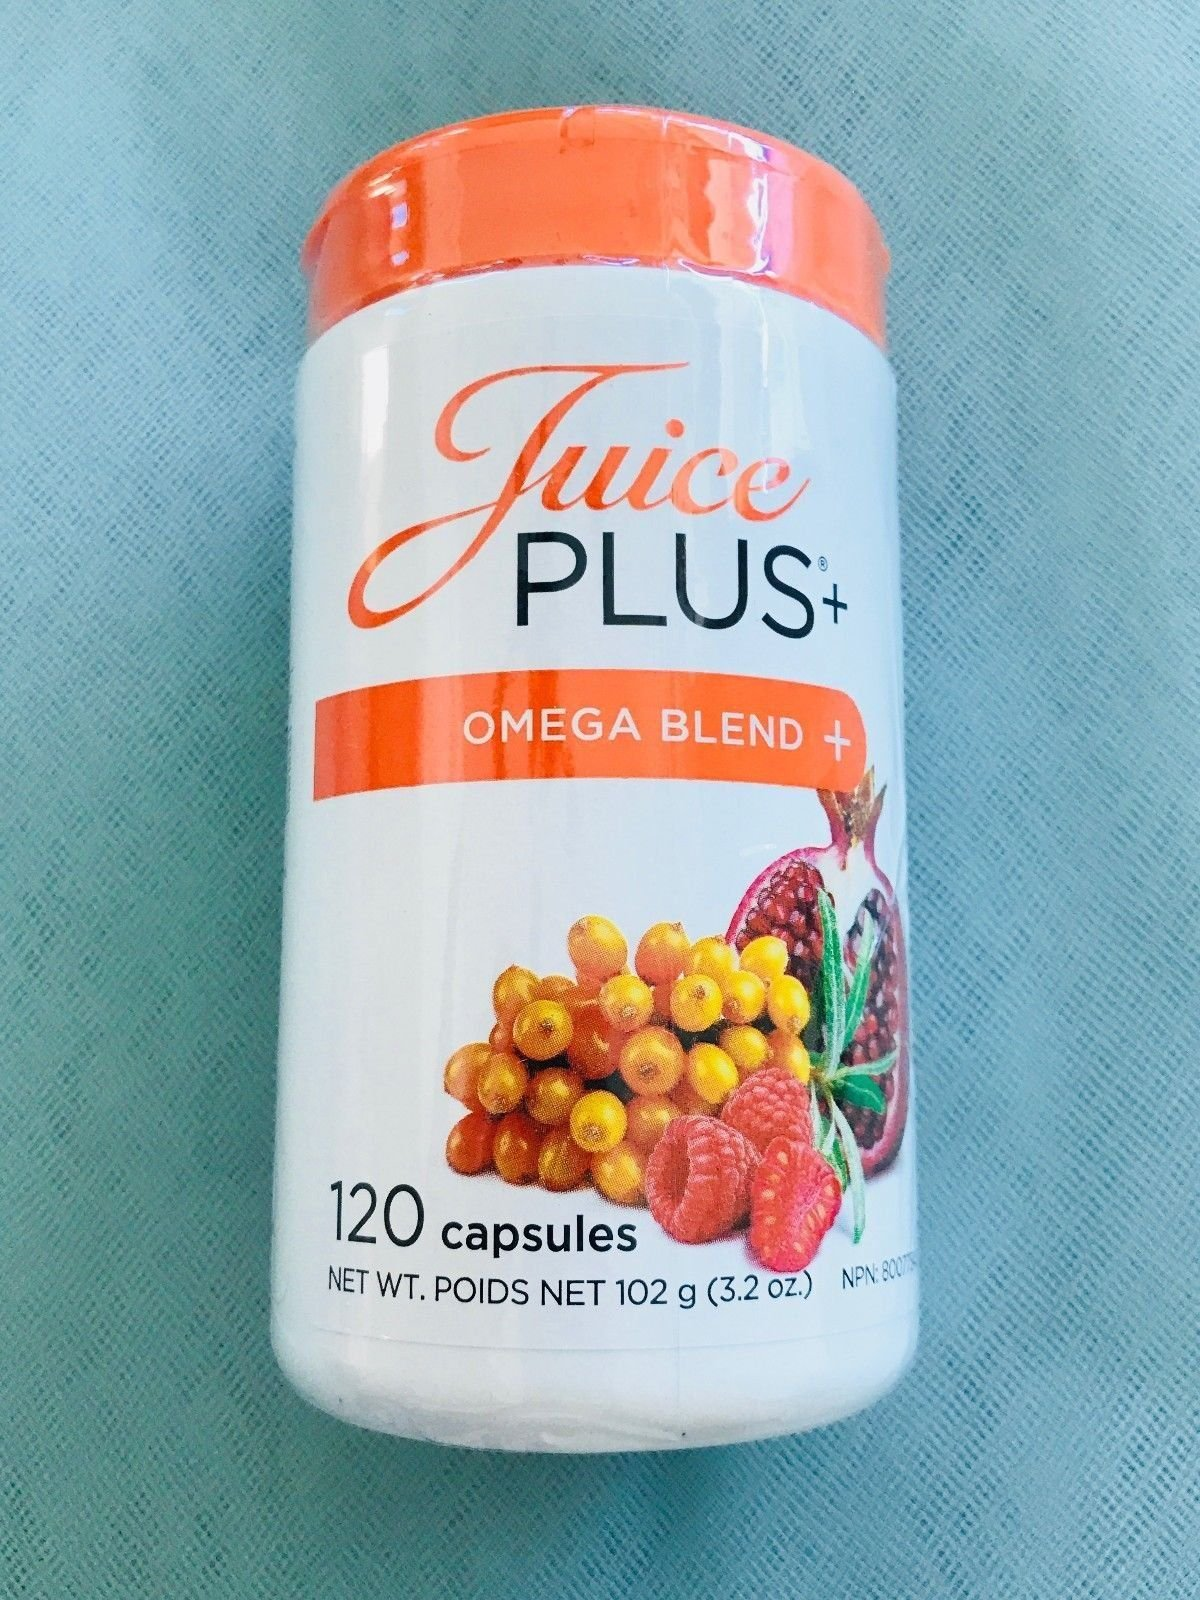 Juice Plus+ 4 Month Supply OMEGA BLEND CAPSULES - 2 bottles - 120 each